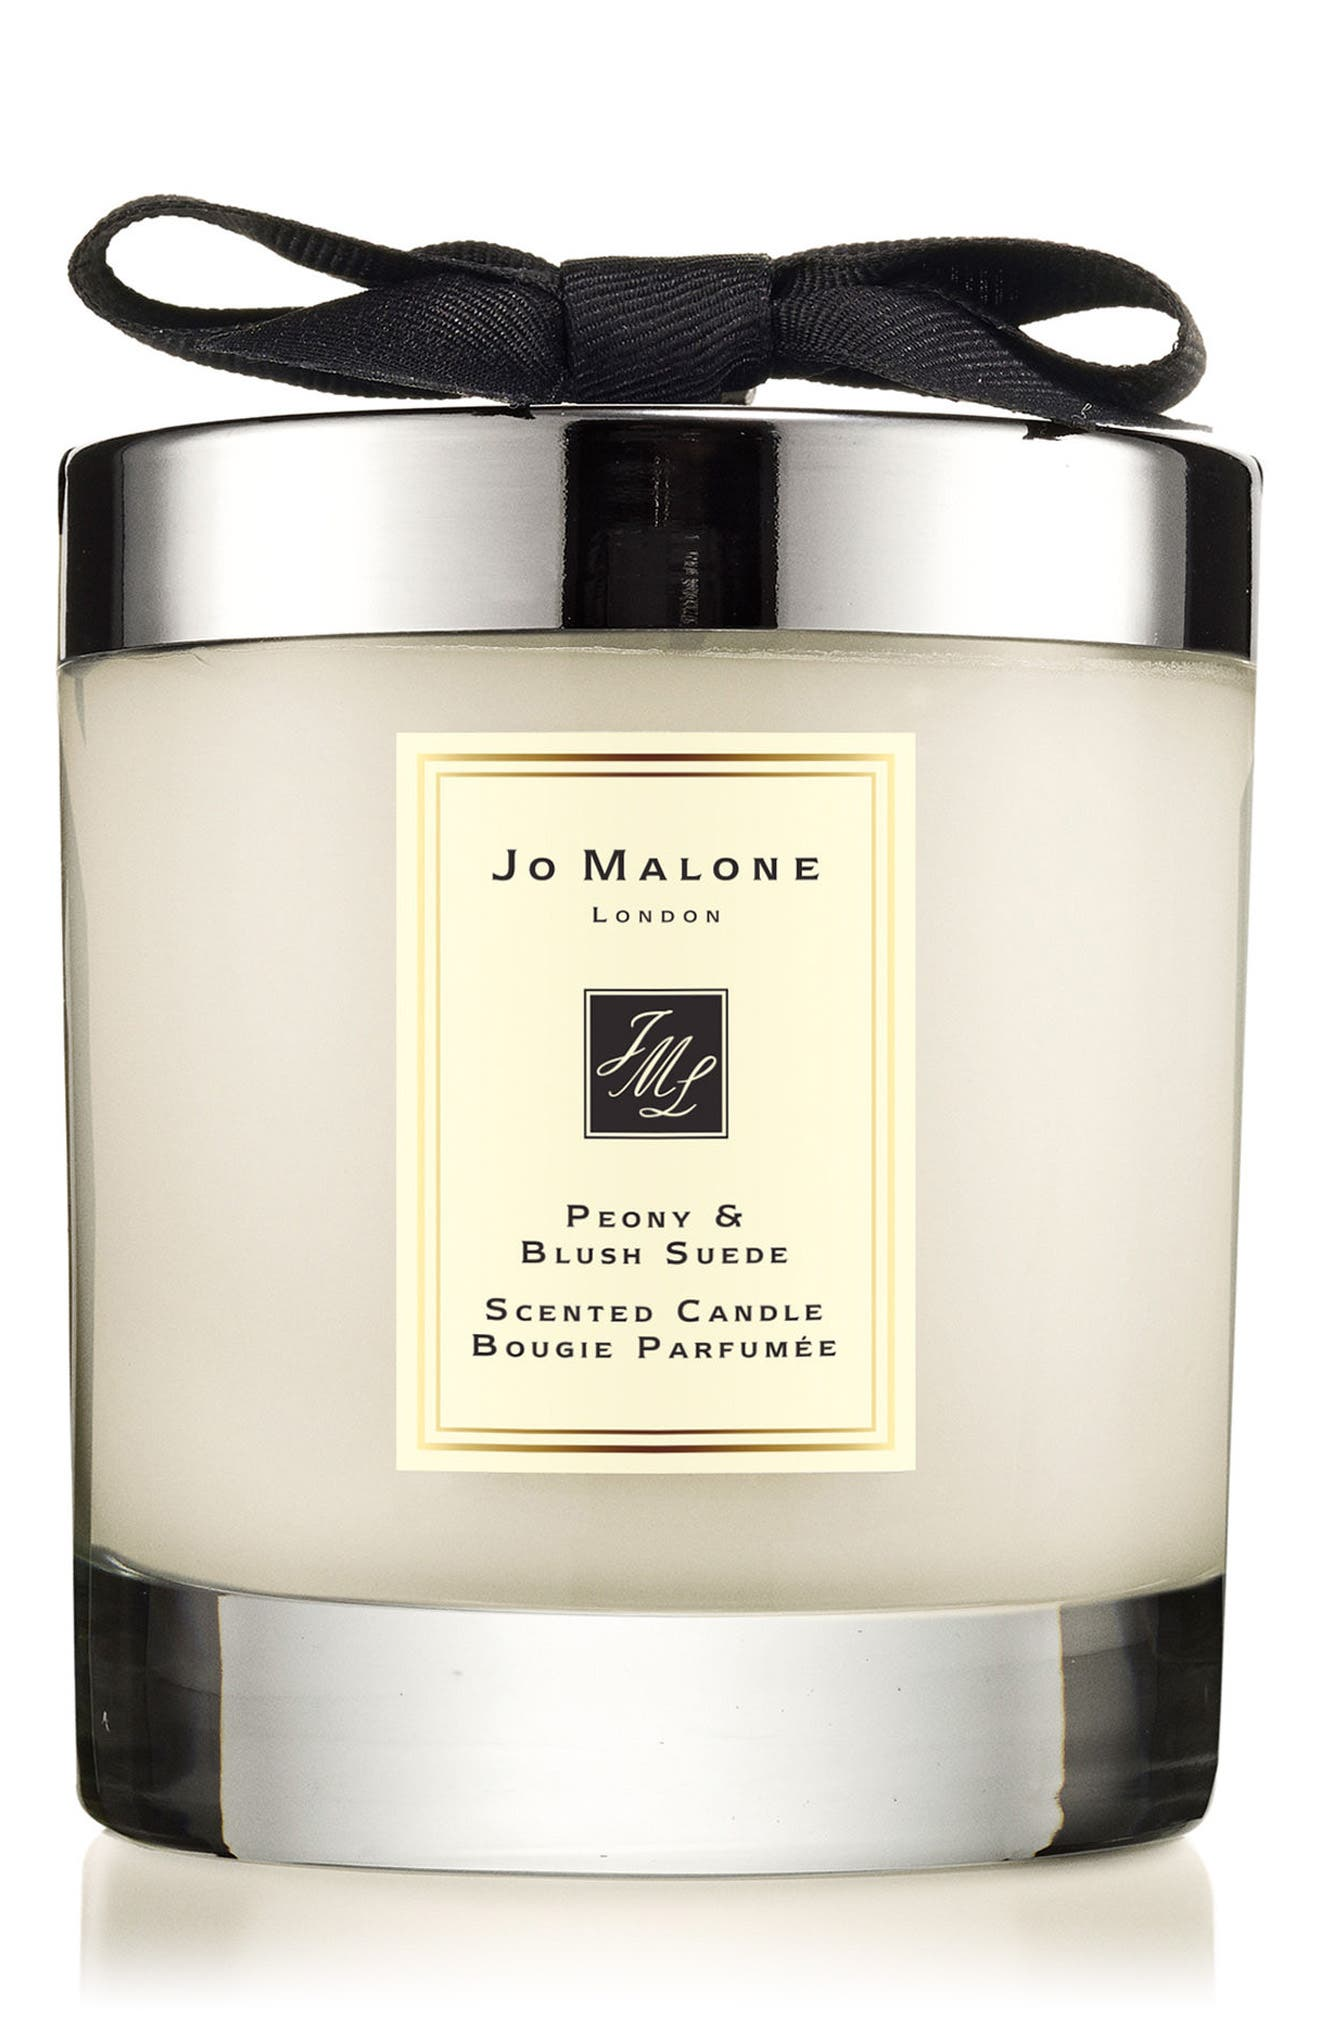 Jo Malone London™ Peony & Blush Suede Scented Candle